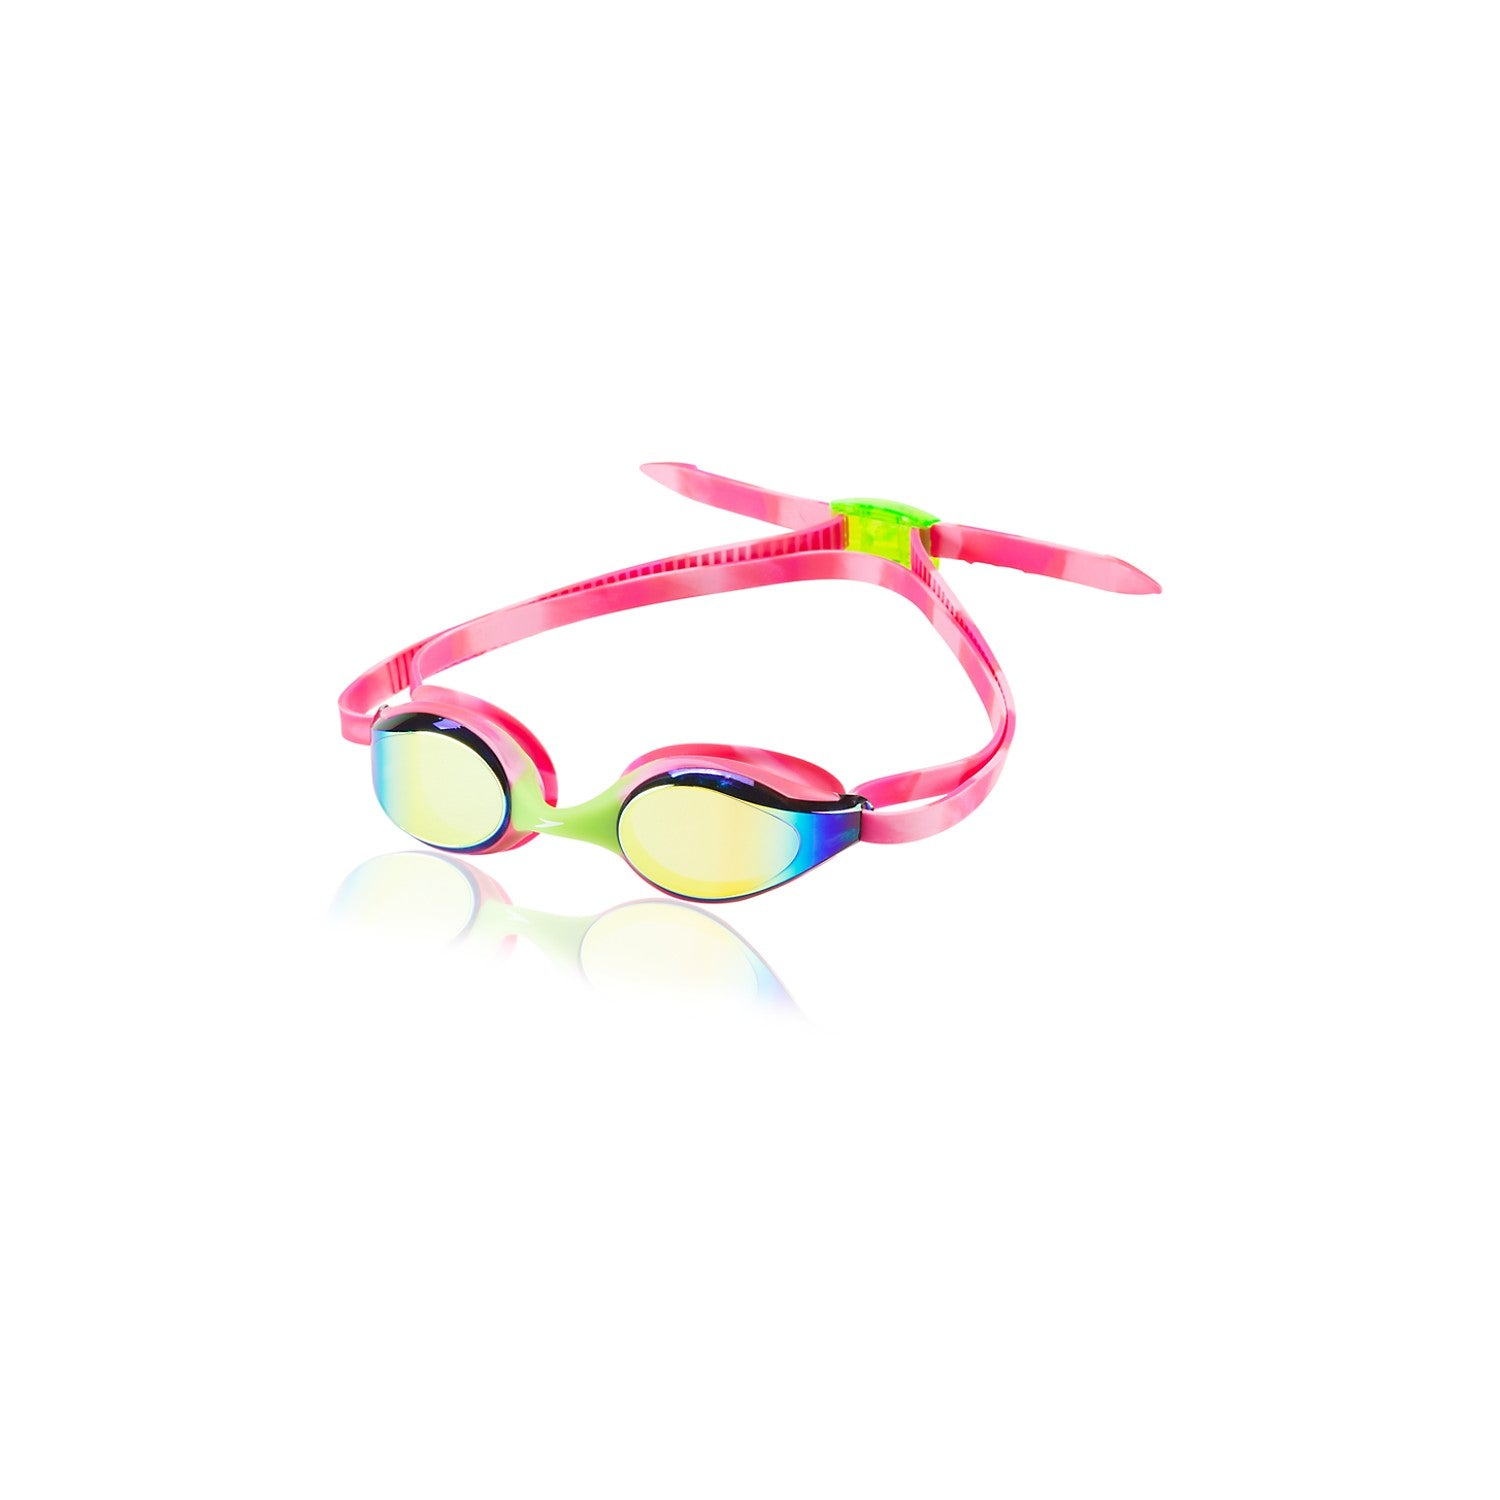 Speedo Hyperflyer Mirrored Goggle